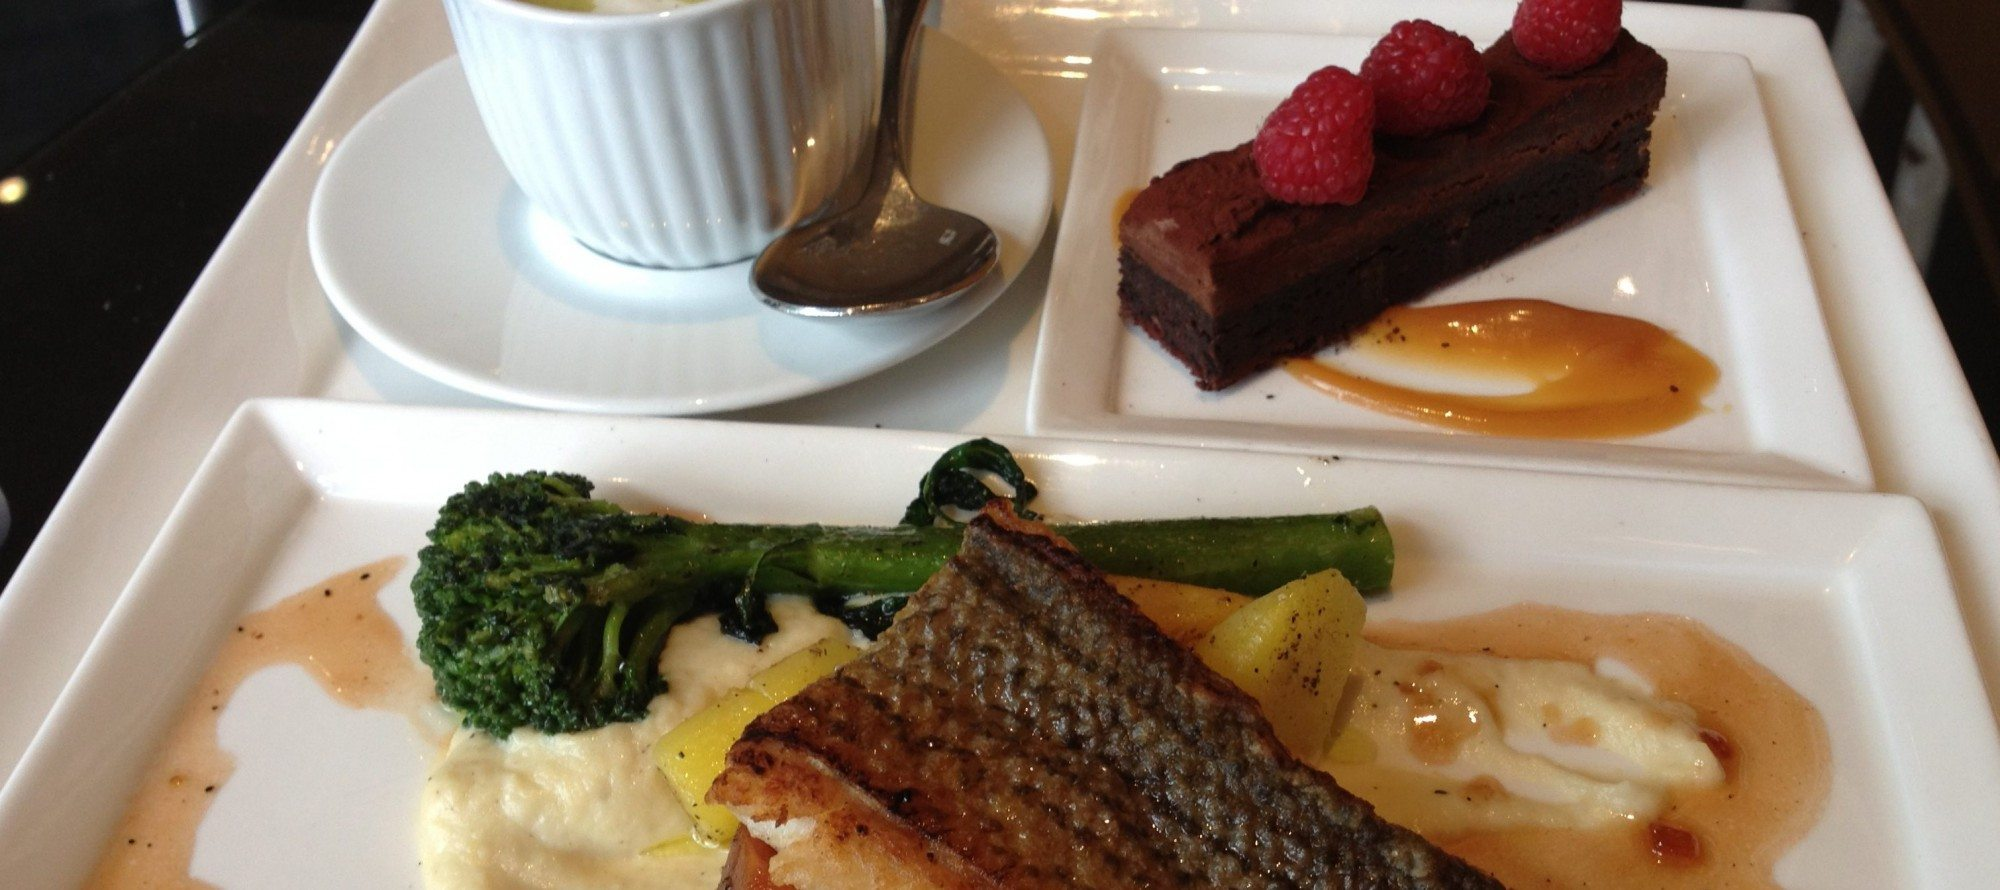 WEEKLY LUNCH PICK: Three courses, one tray at Brookstreet Hotel's Options Lounge